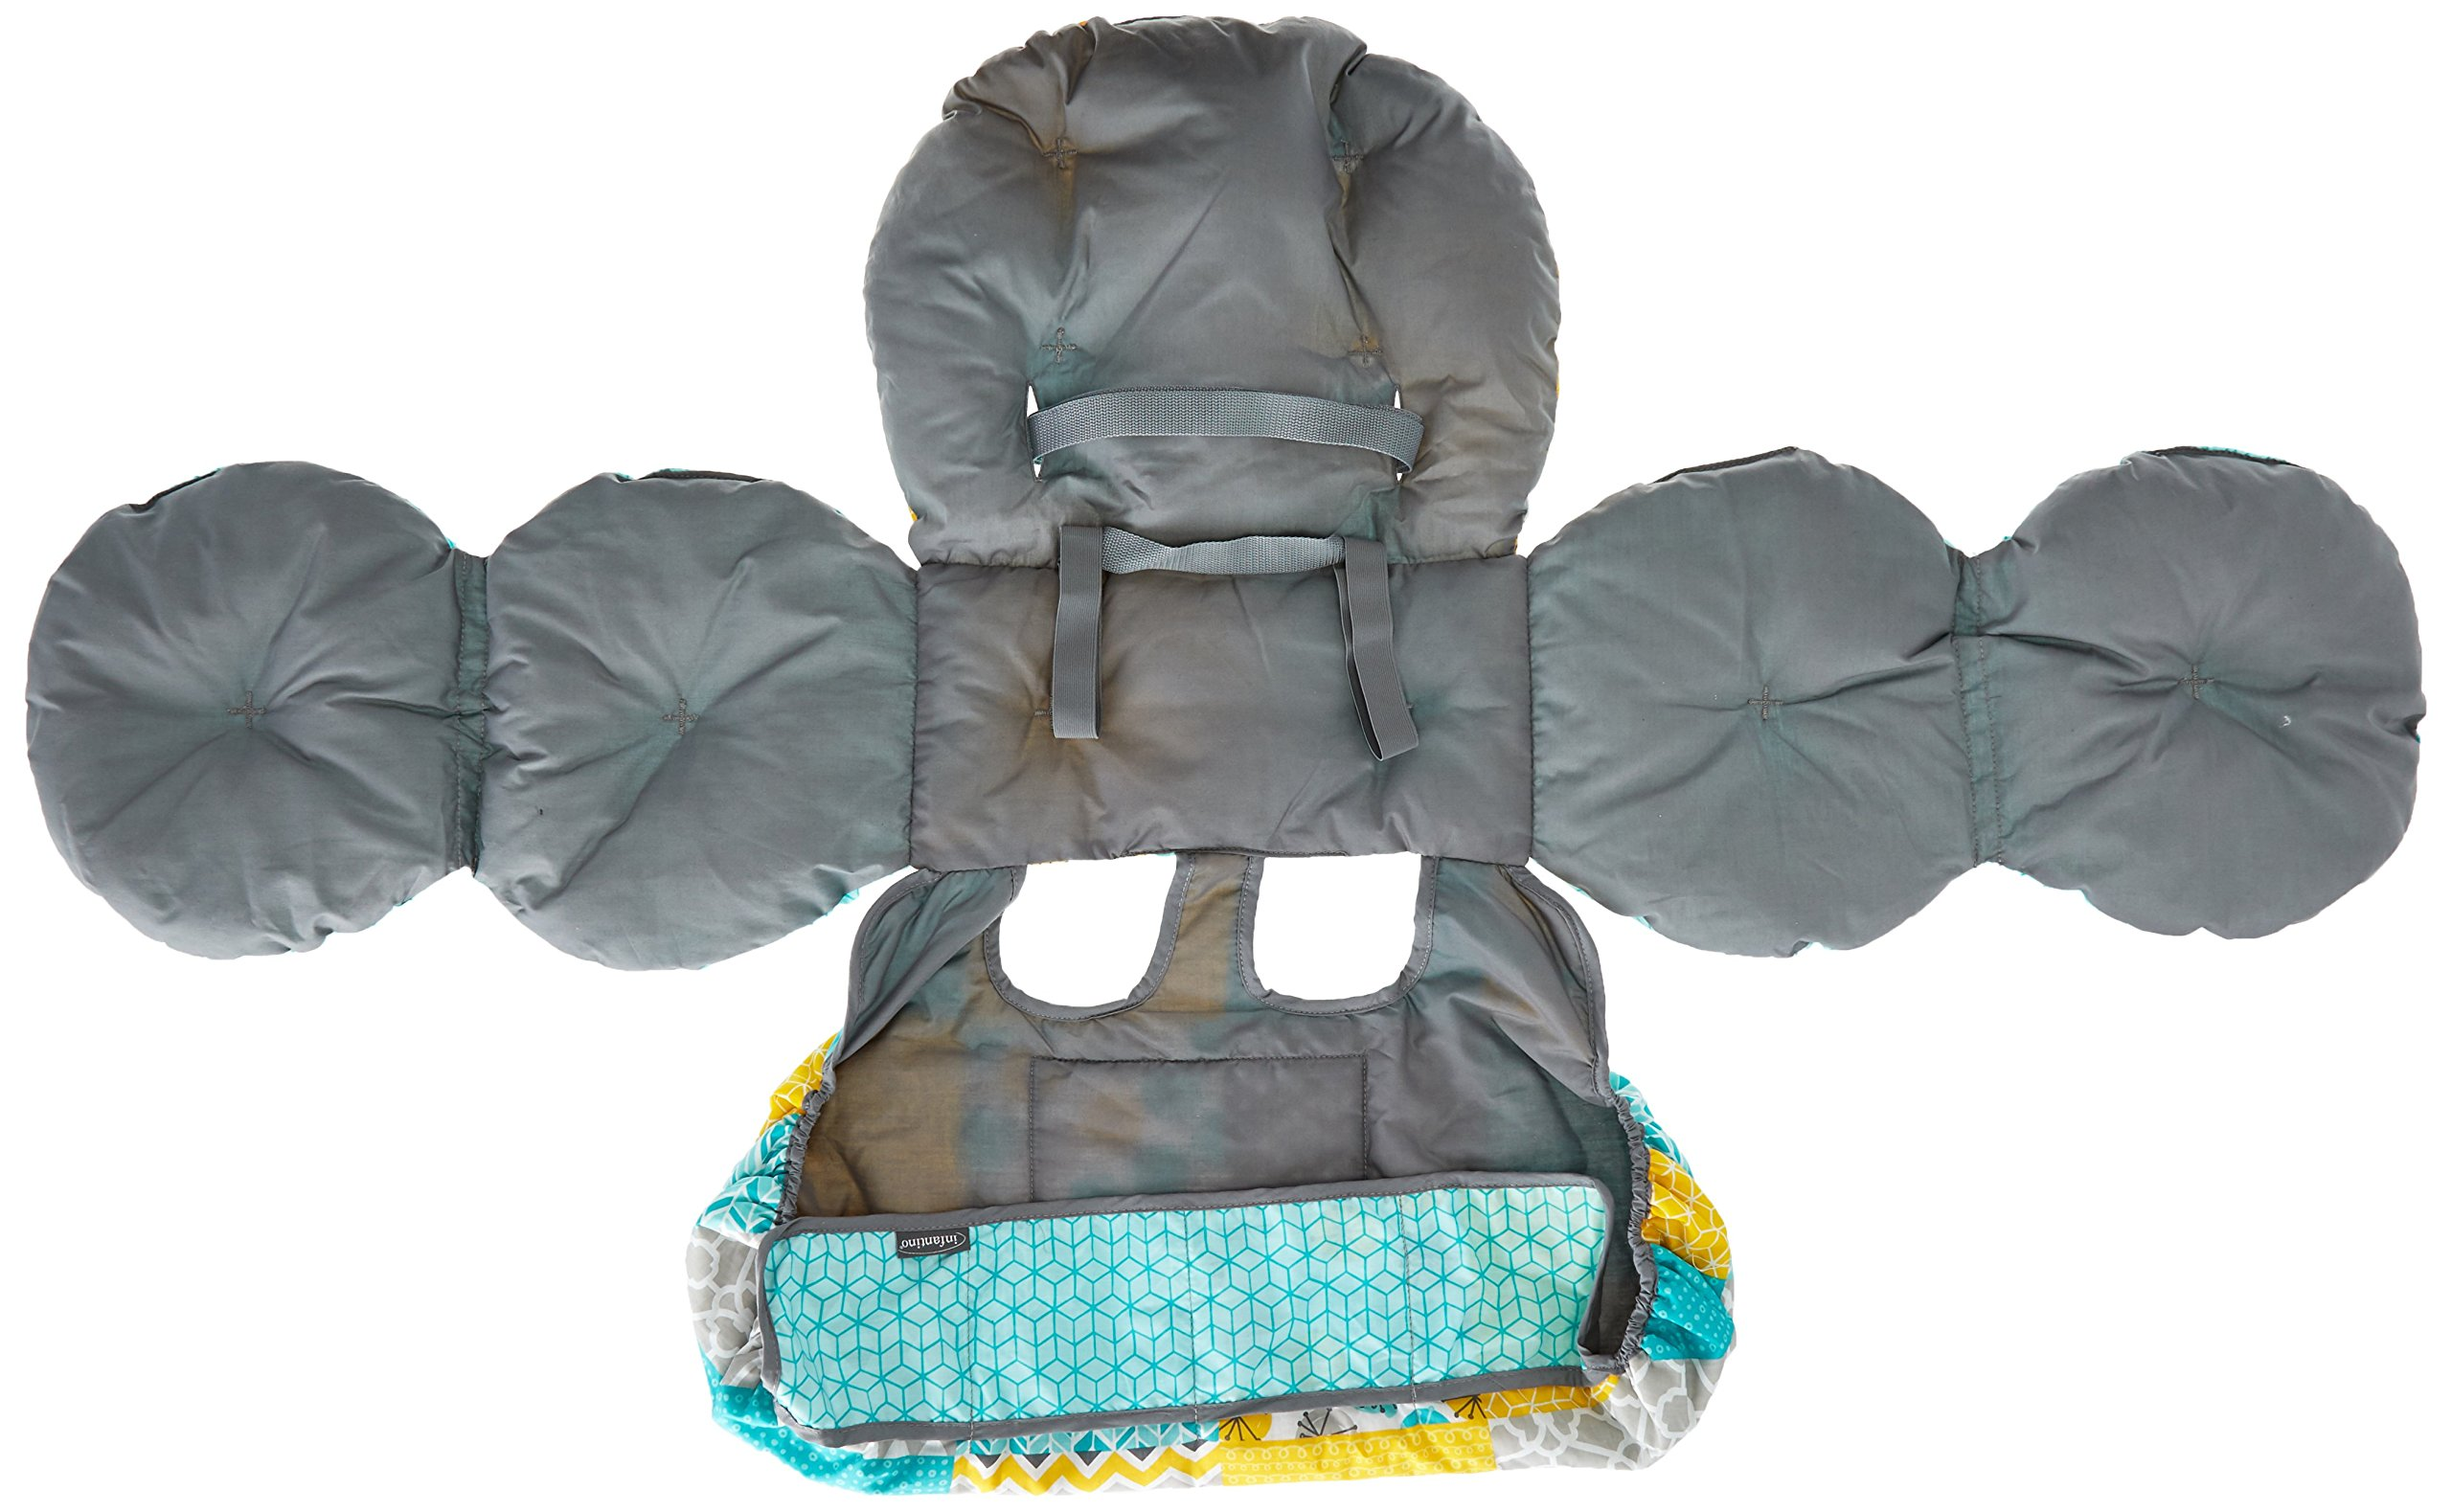 Infantino Unisex Baby Upright Travel Necessities Supportive Cart Cover, Teal by Infantino (Image #3)